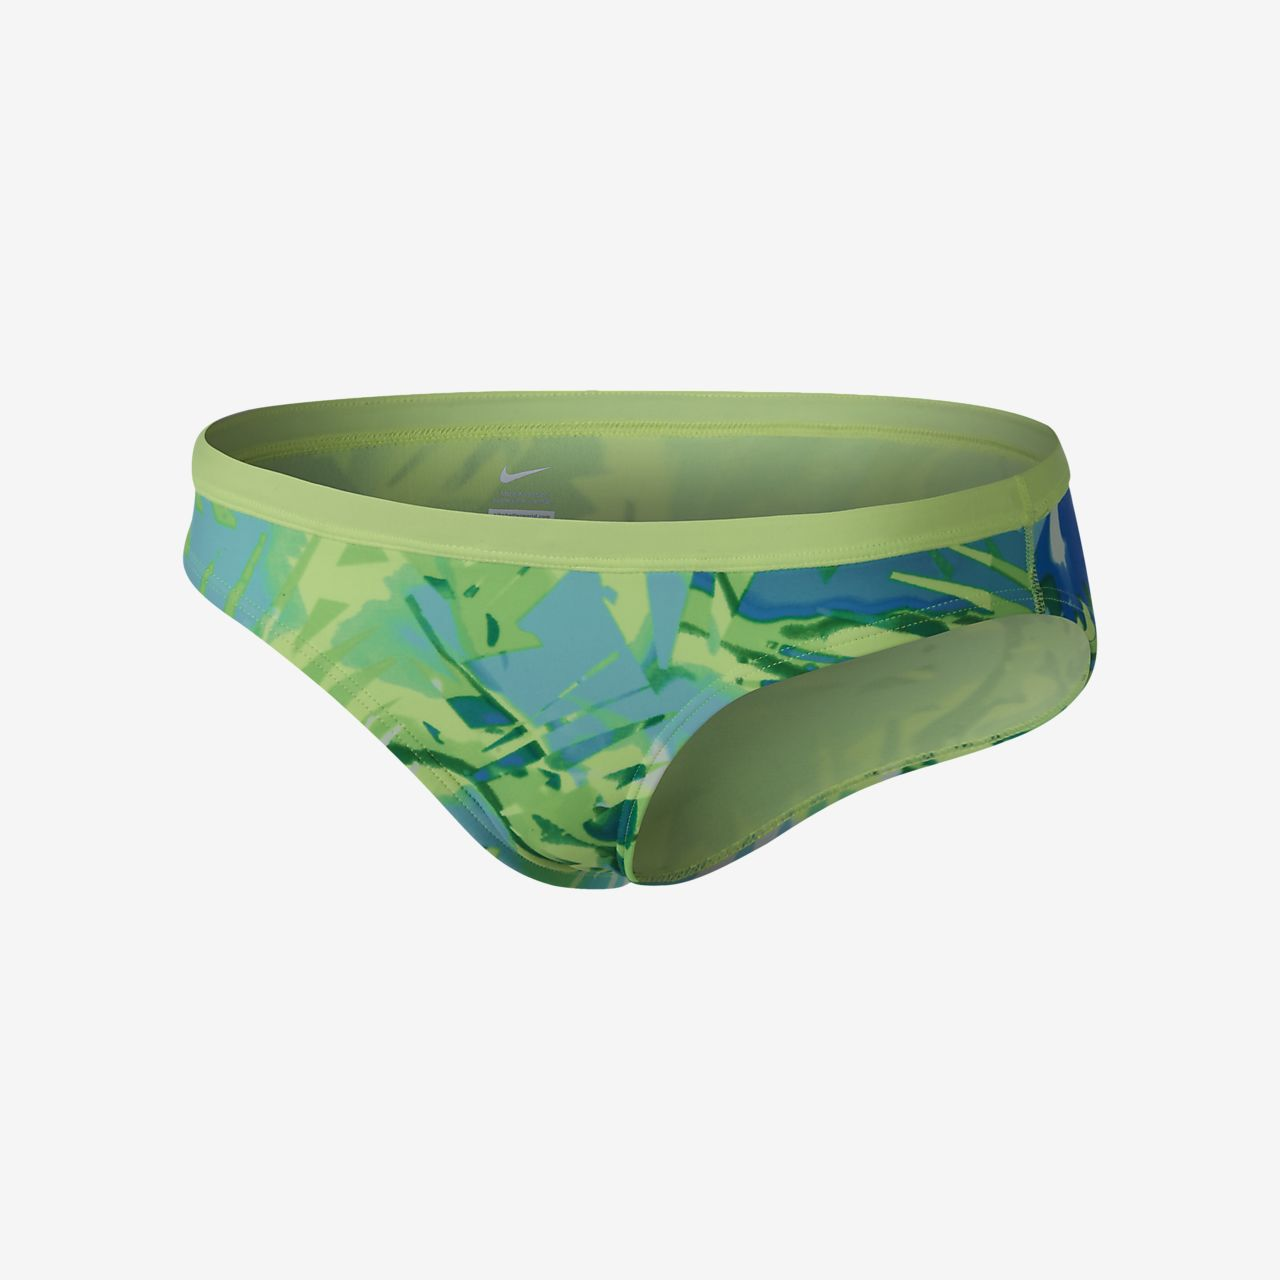 Nike Tropical Brief Women's Swim Bottoms